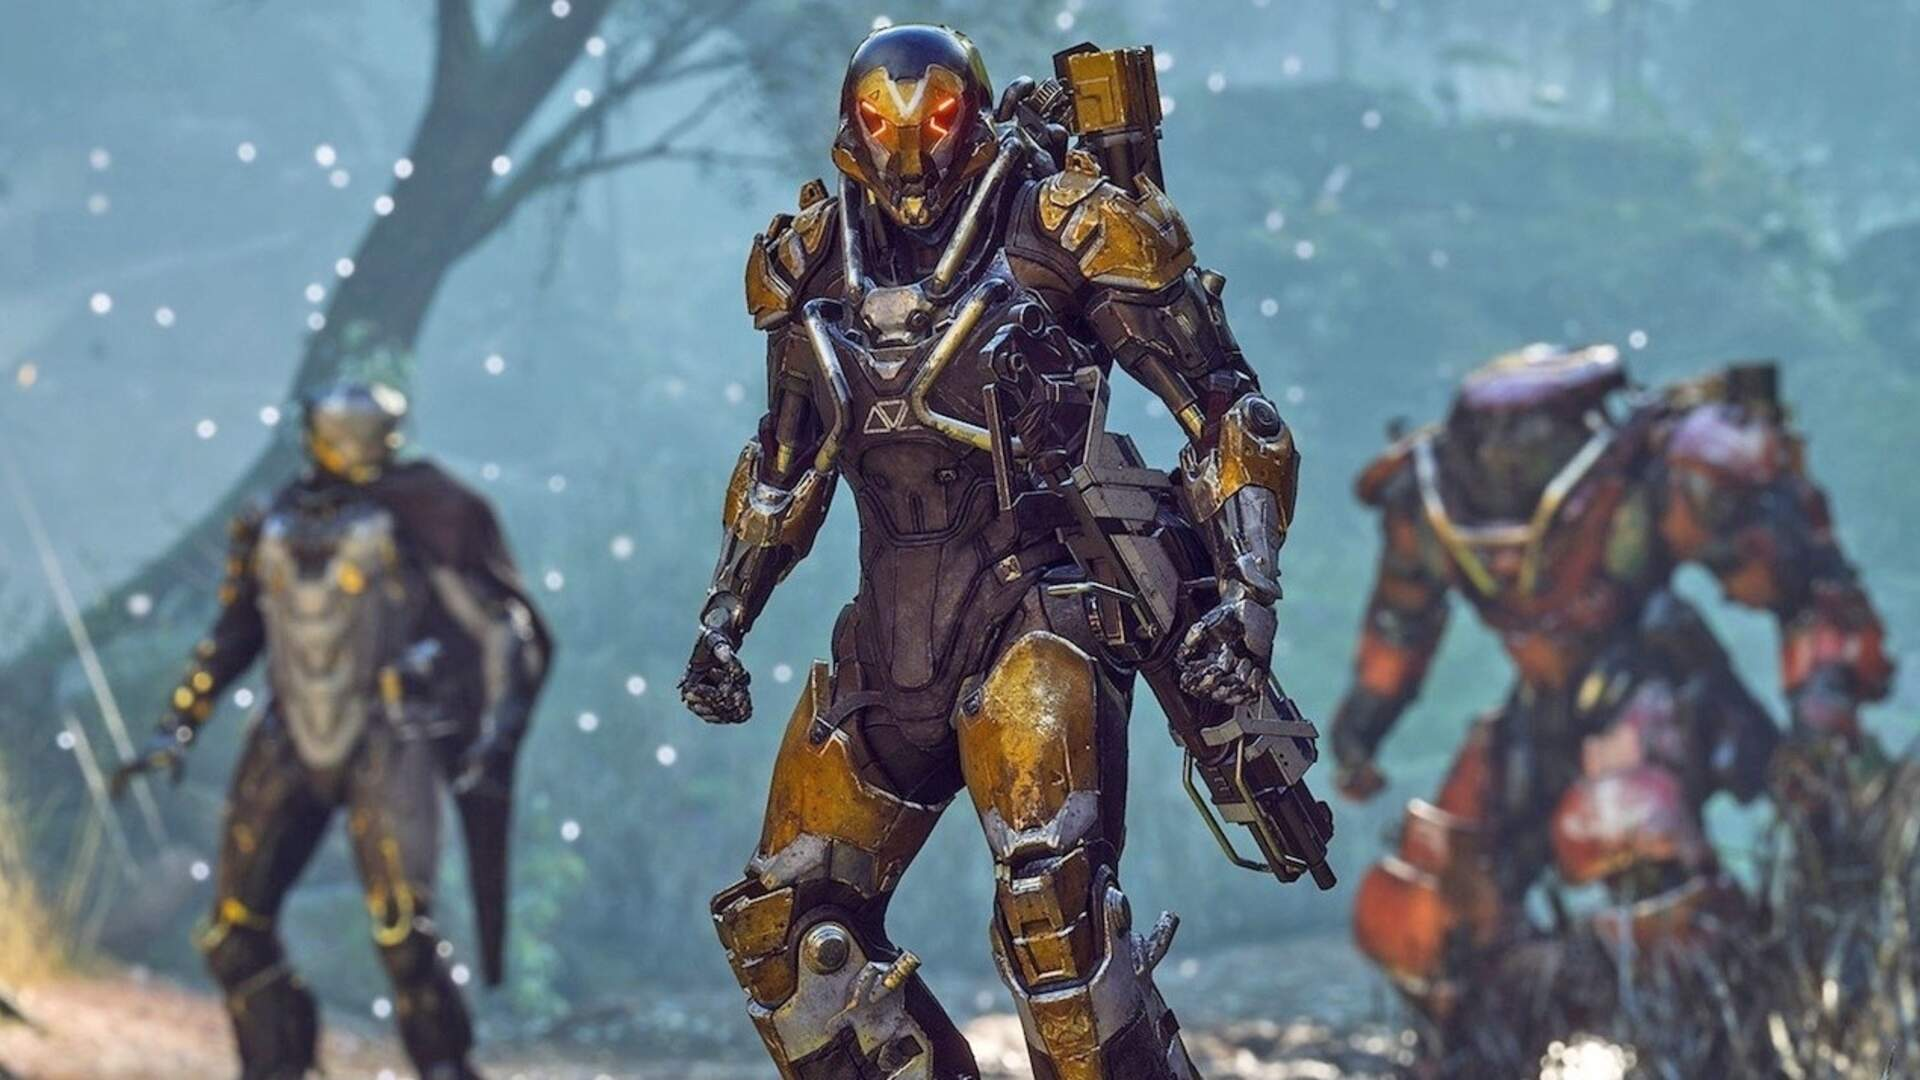 Anthem Voice Actors - Here's the Voice Cast For Anthem